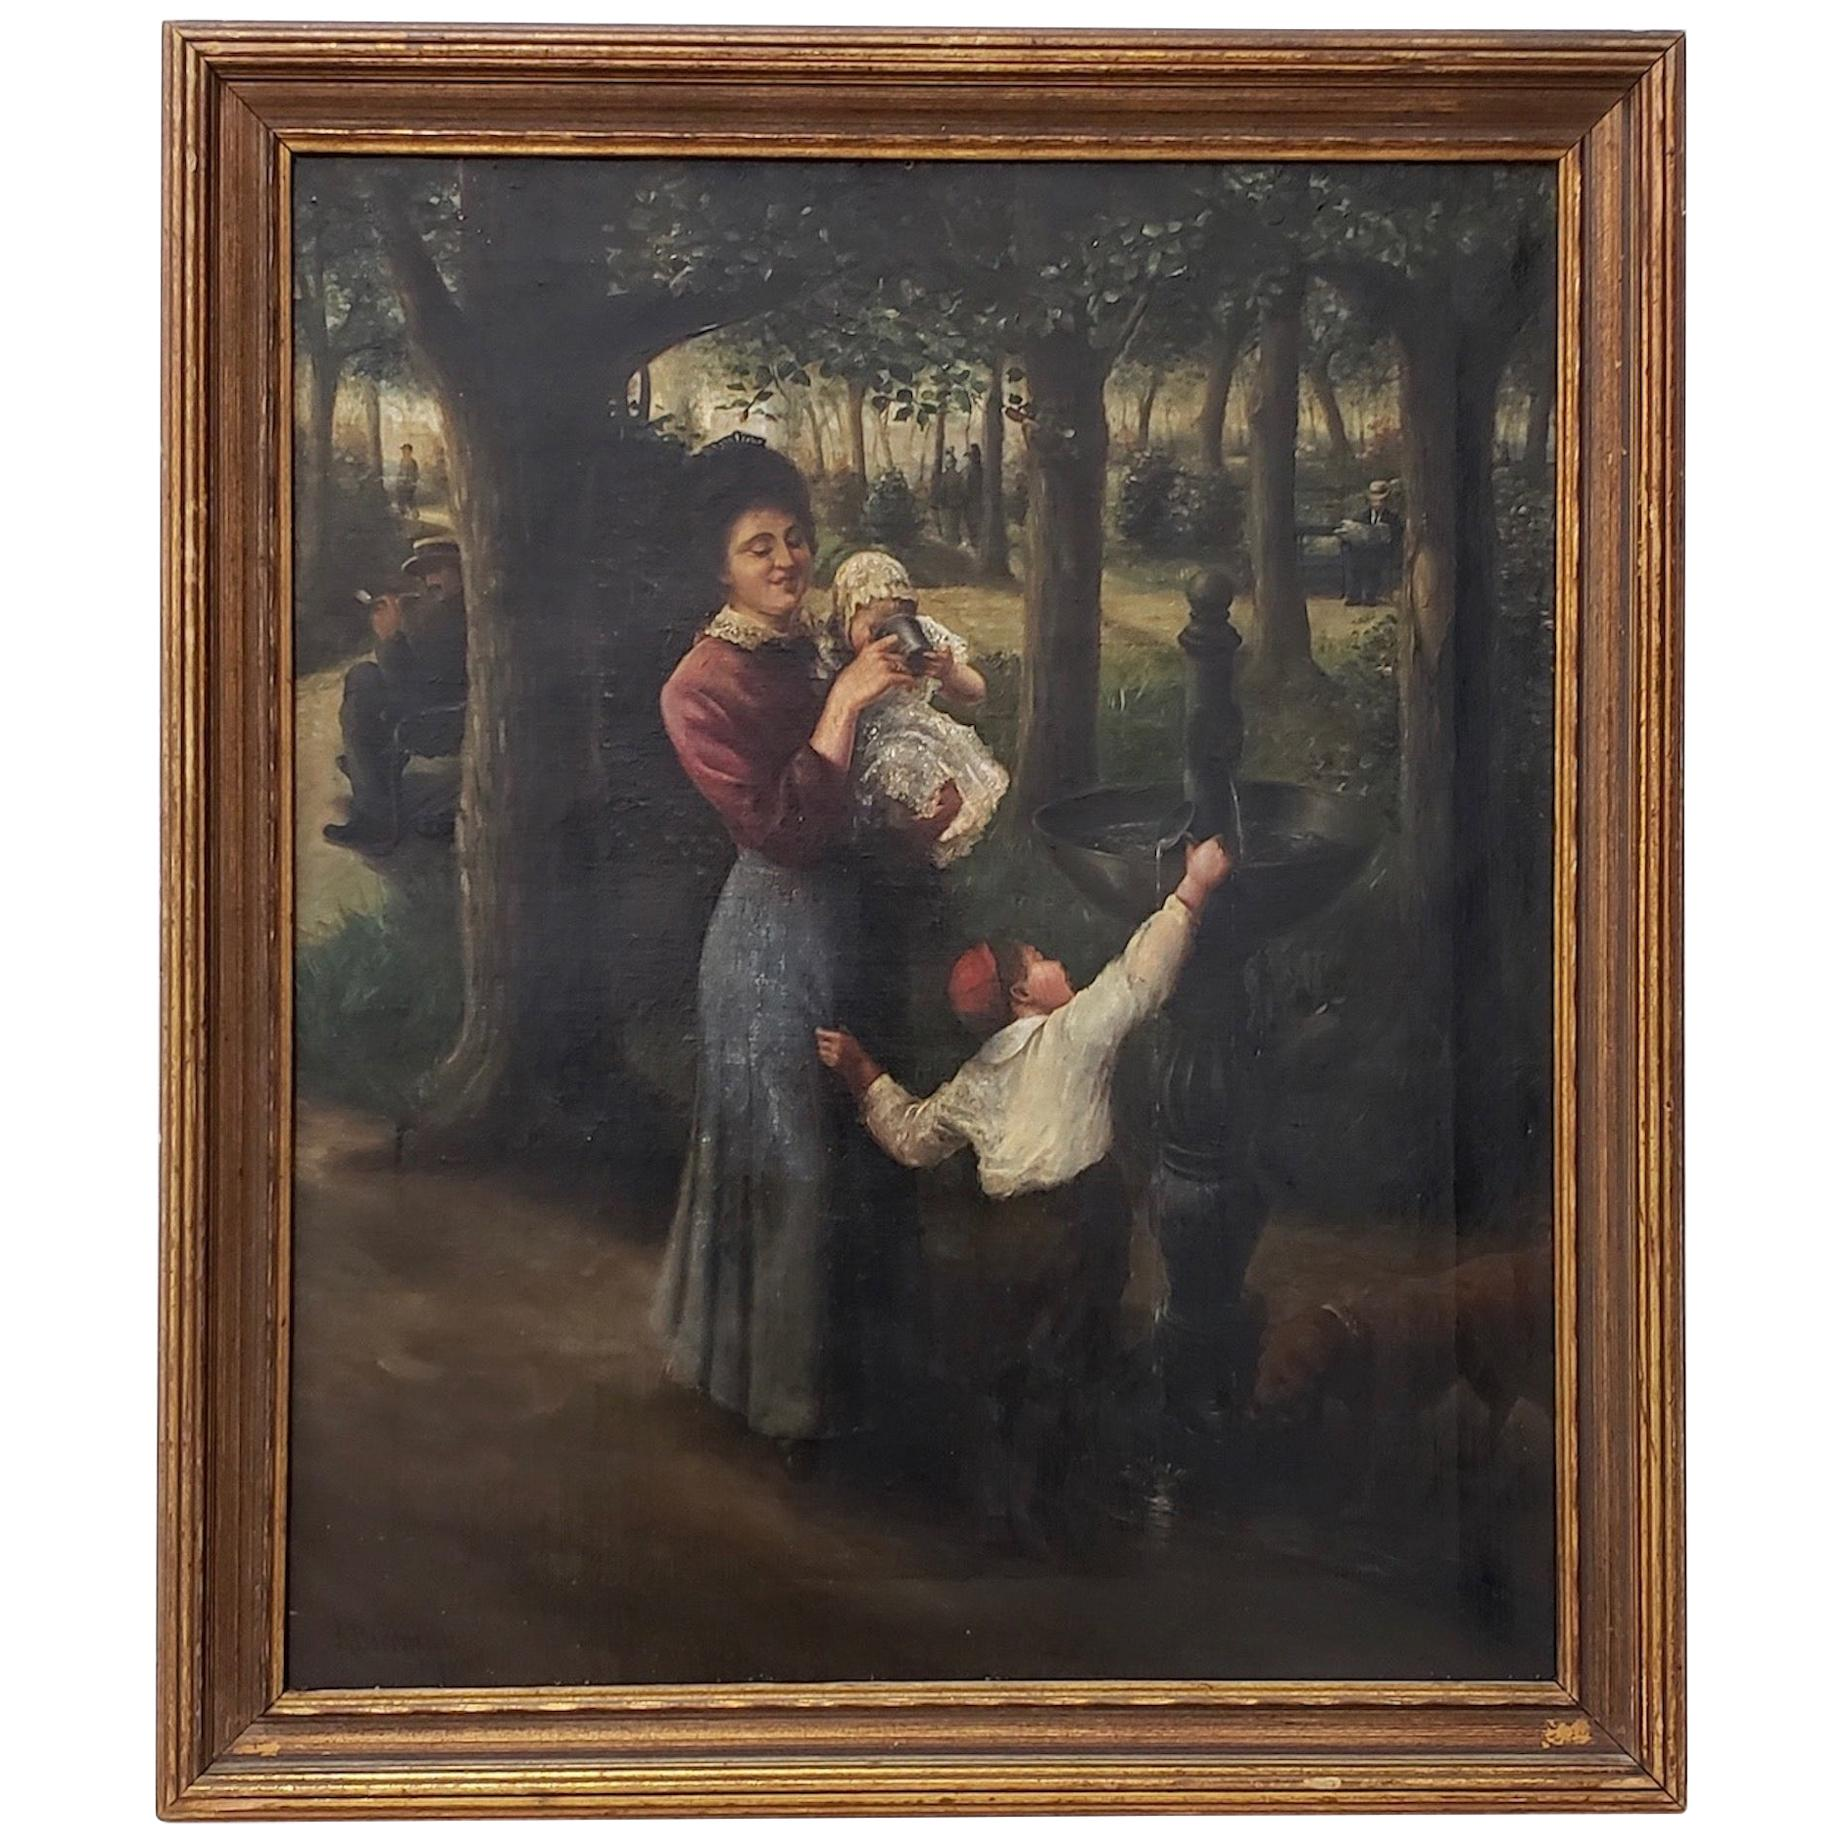 19th Century Oil Painting of a Young Family in a Park